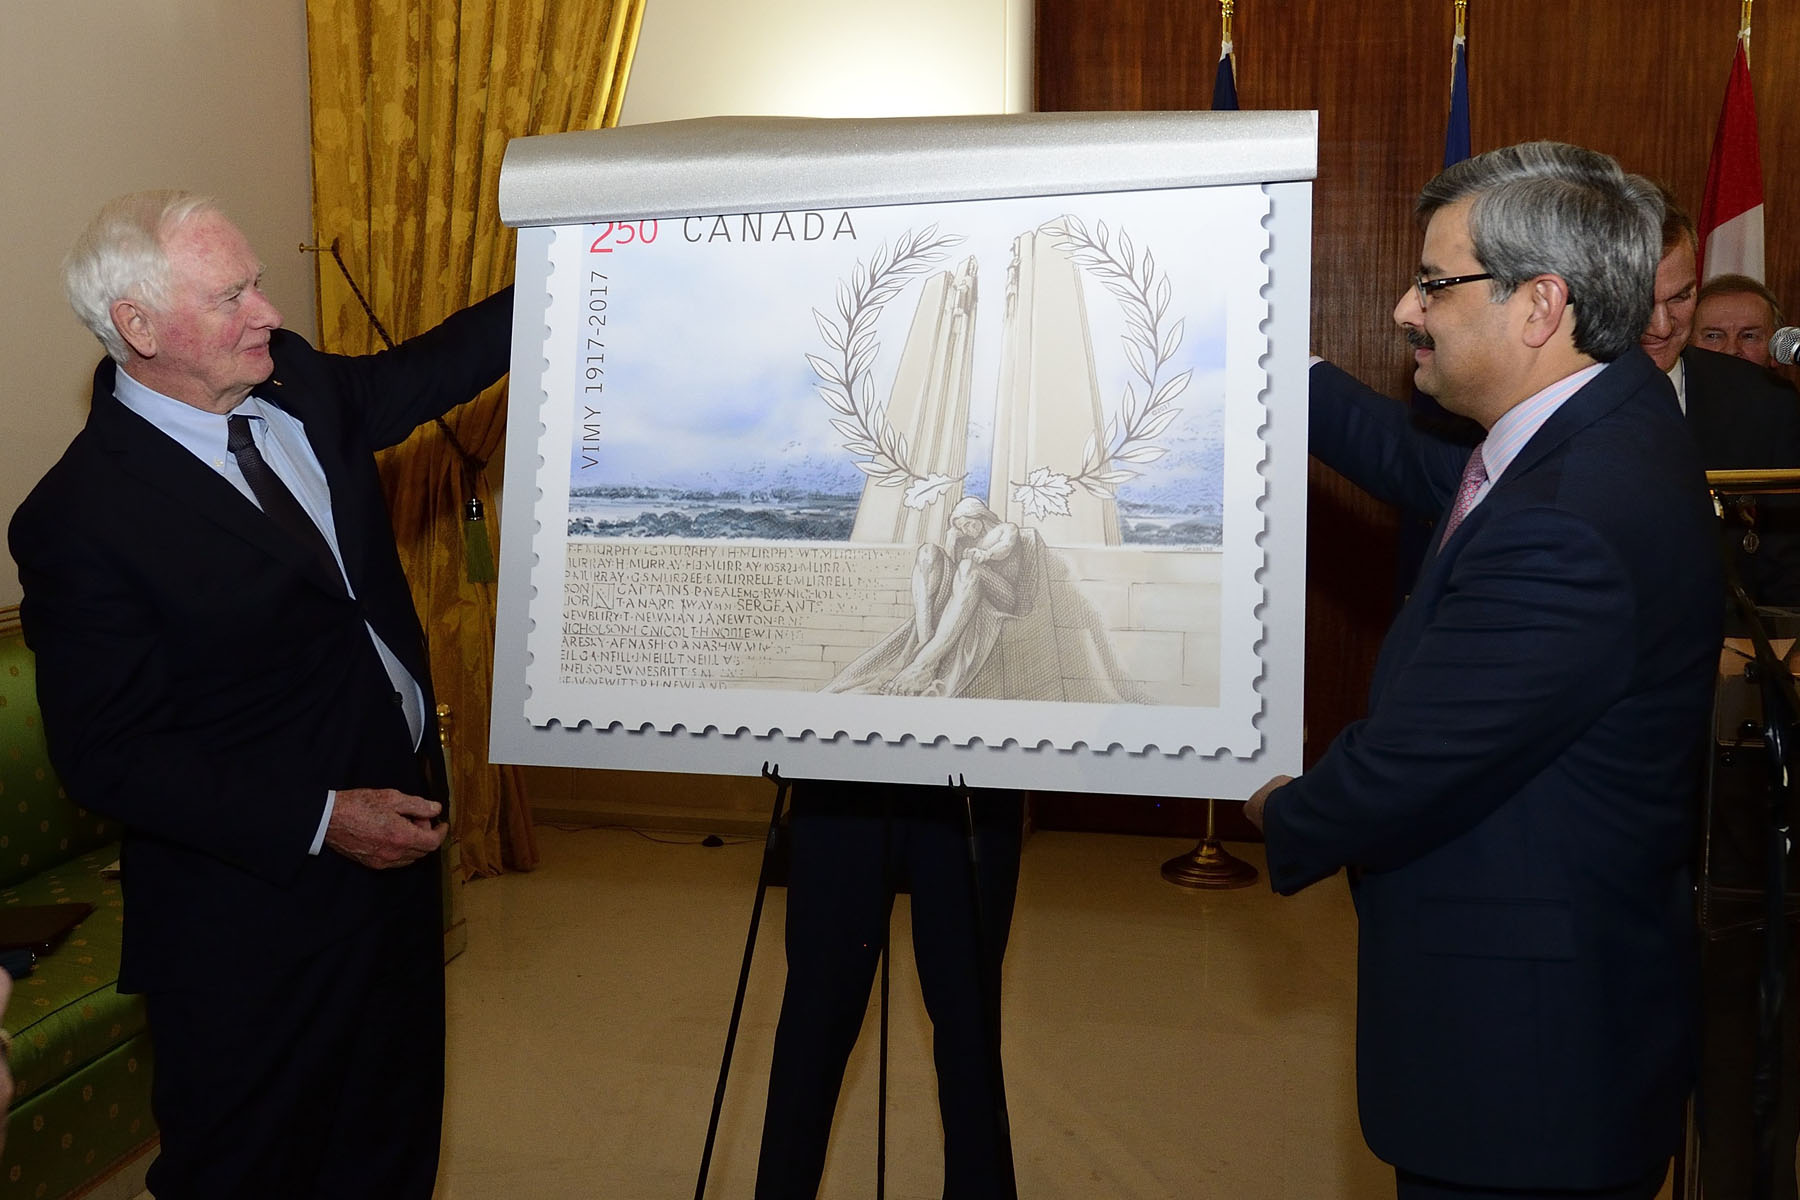 The Governor General and the President and CEO of Canada Post unveiled the Canadian stamp.